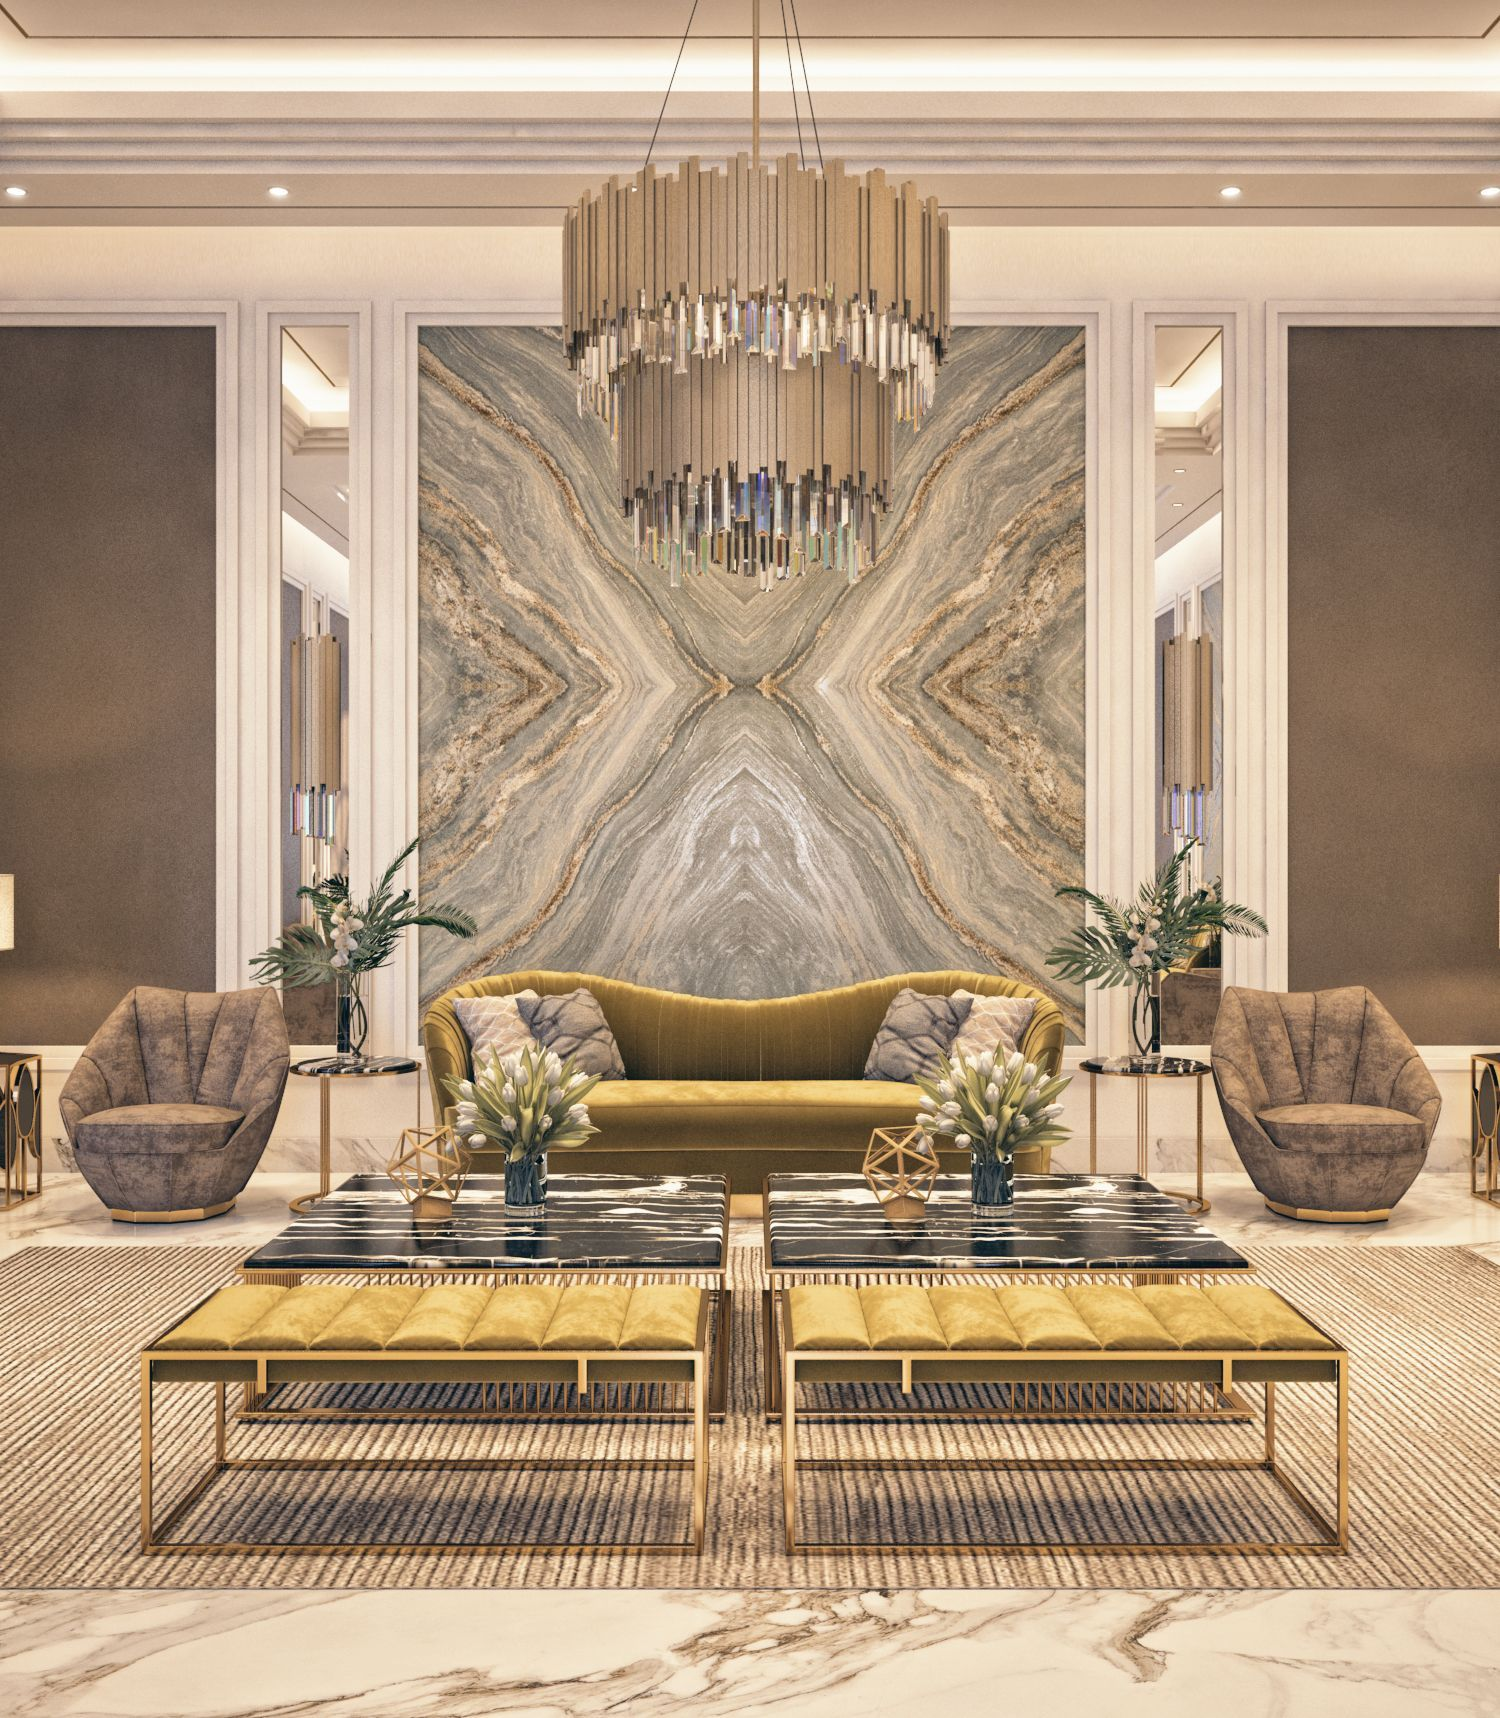 Luxurious Main Reception Interior Design By Amsolutions Riyadh Saudi Arabia Majlis In 2020 Luxury Living Room Living Room Design Modern Luxury Living Room Design